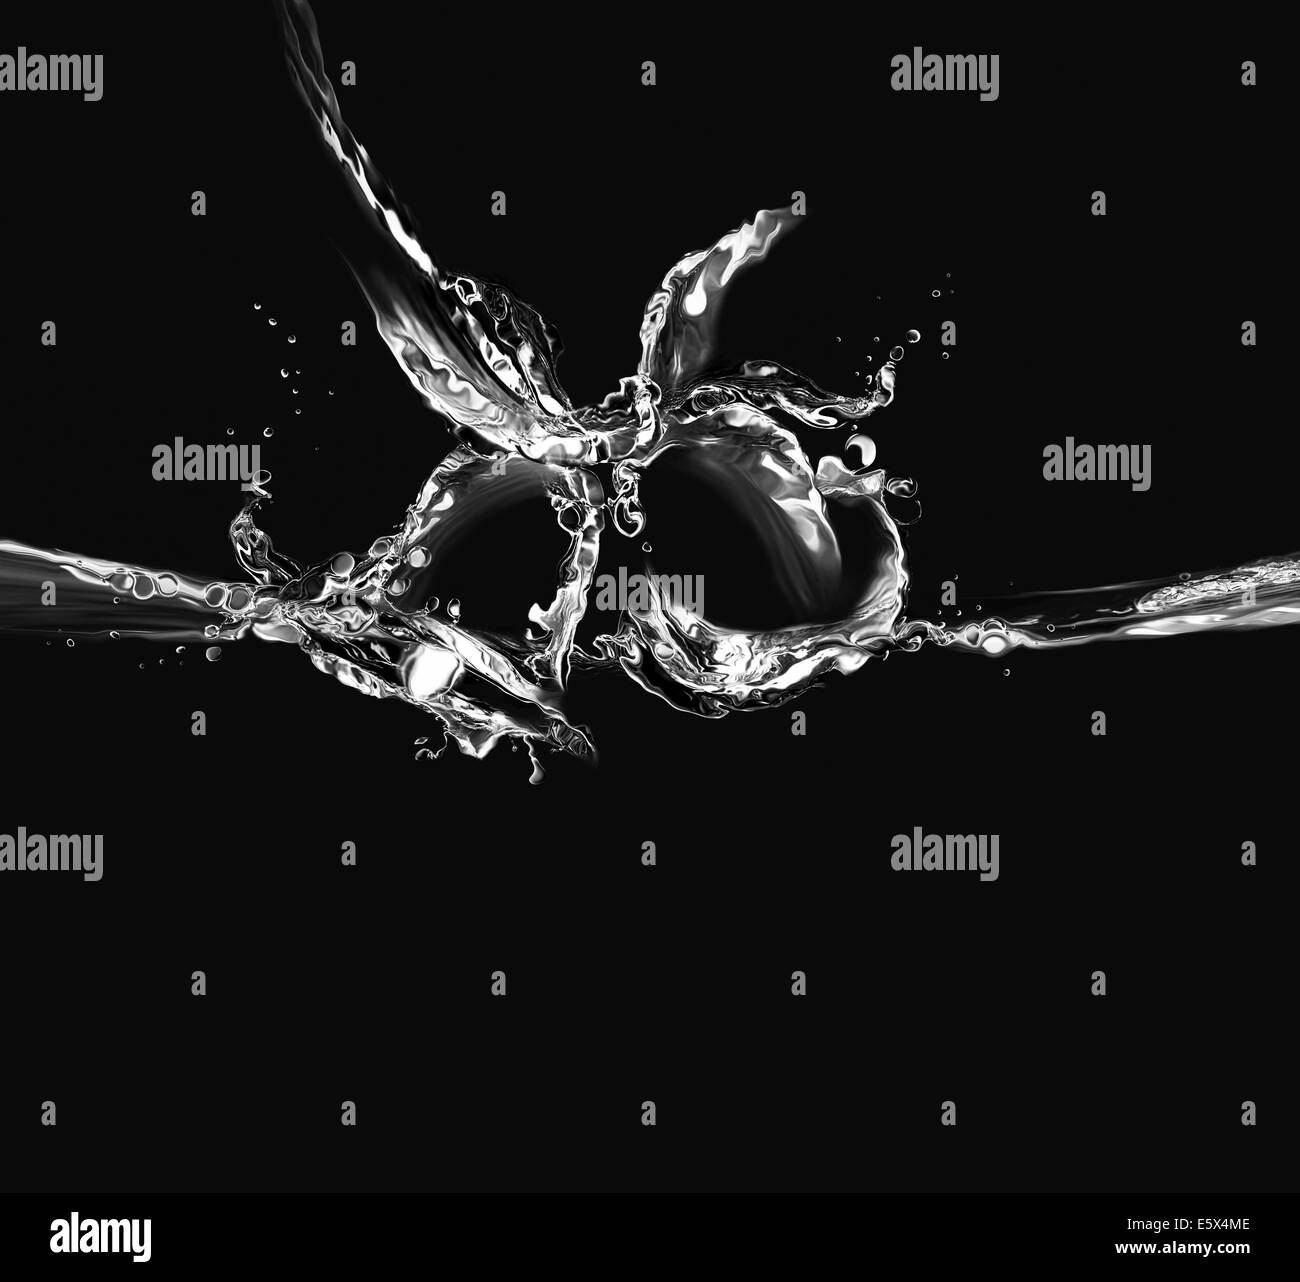 Silhouette of two bells made of water in a ringing motion, on black. - Stock Image